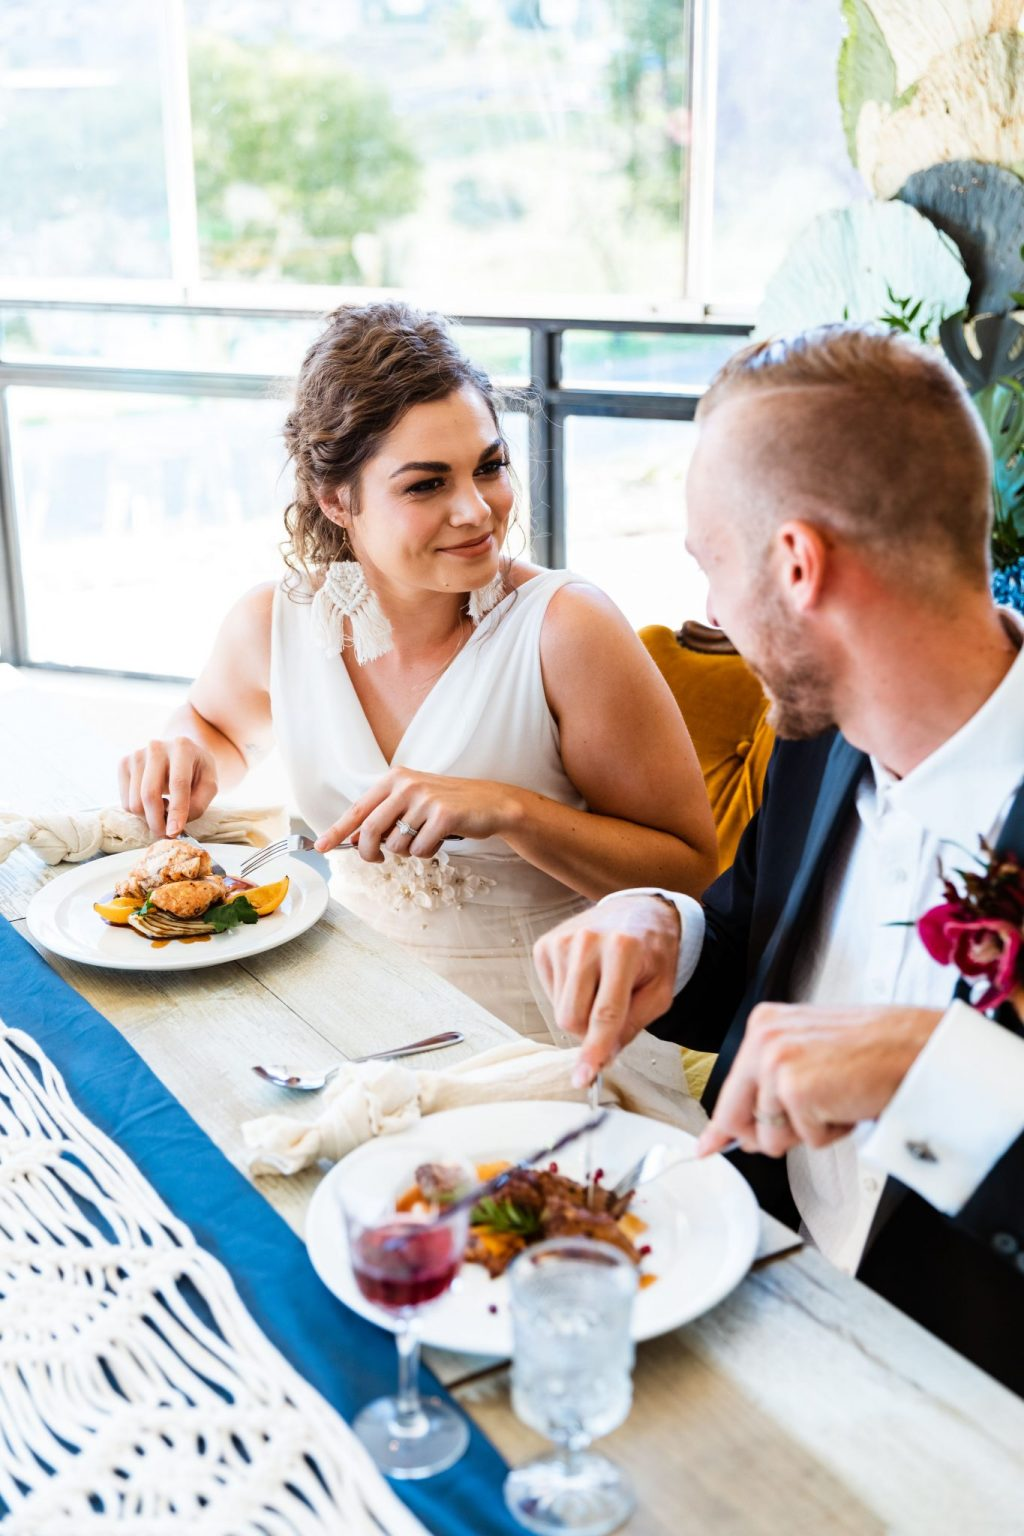 Wedding couple eating a meal